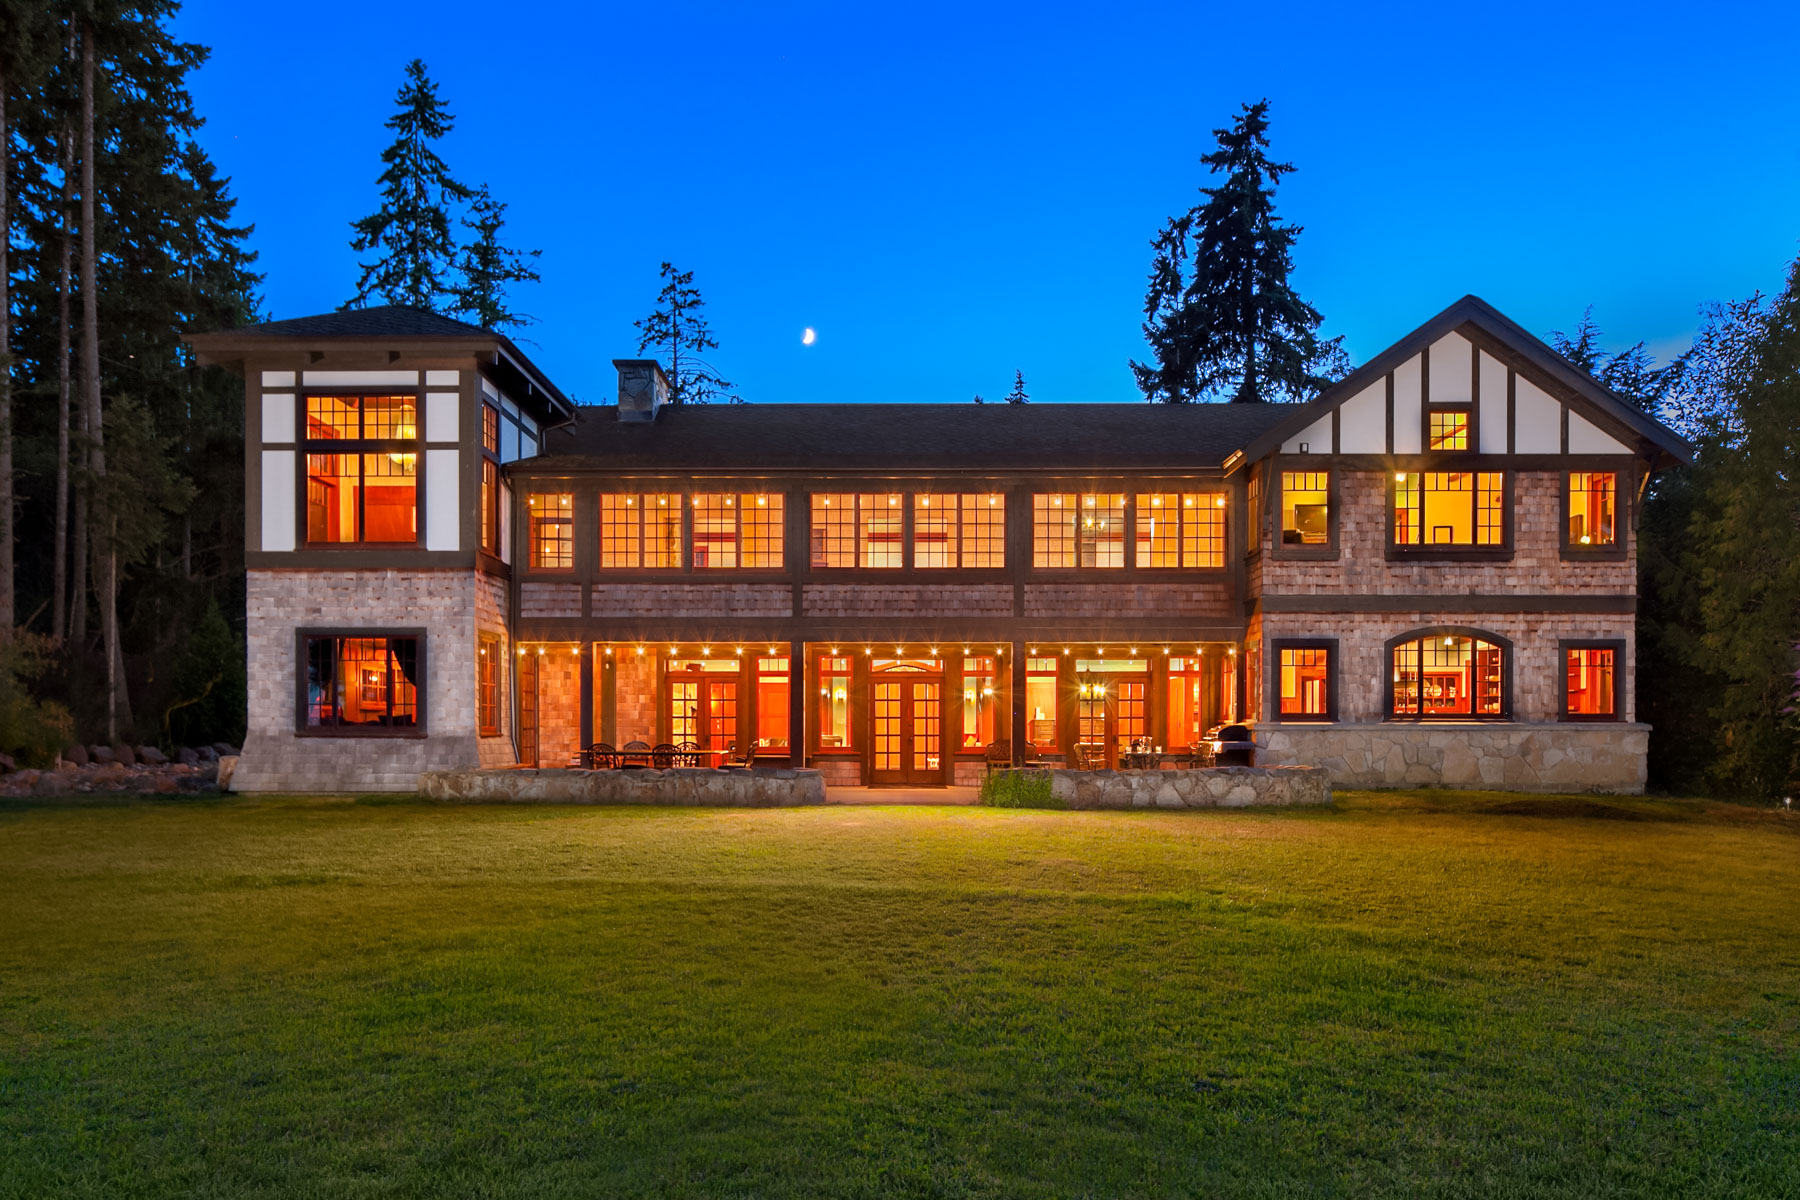 Single Family Home for Sale at The Lodge at Blakley Harbor 10254 NE Country Club Rd Bainbridge Island, Washington 98110 United States